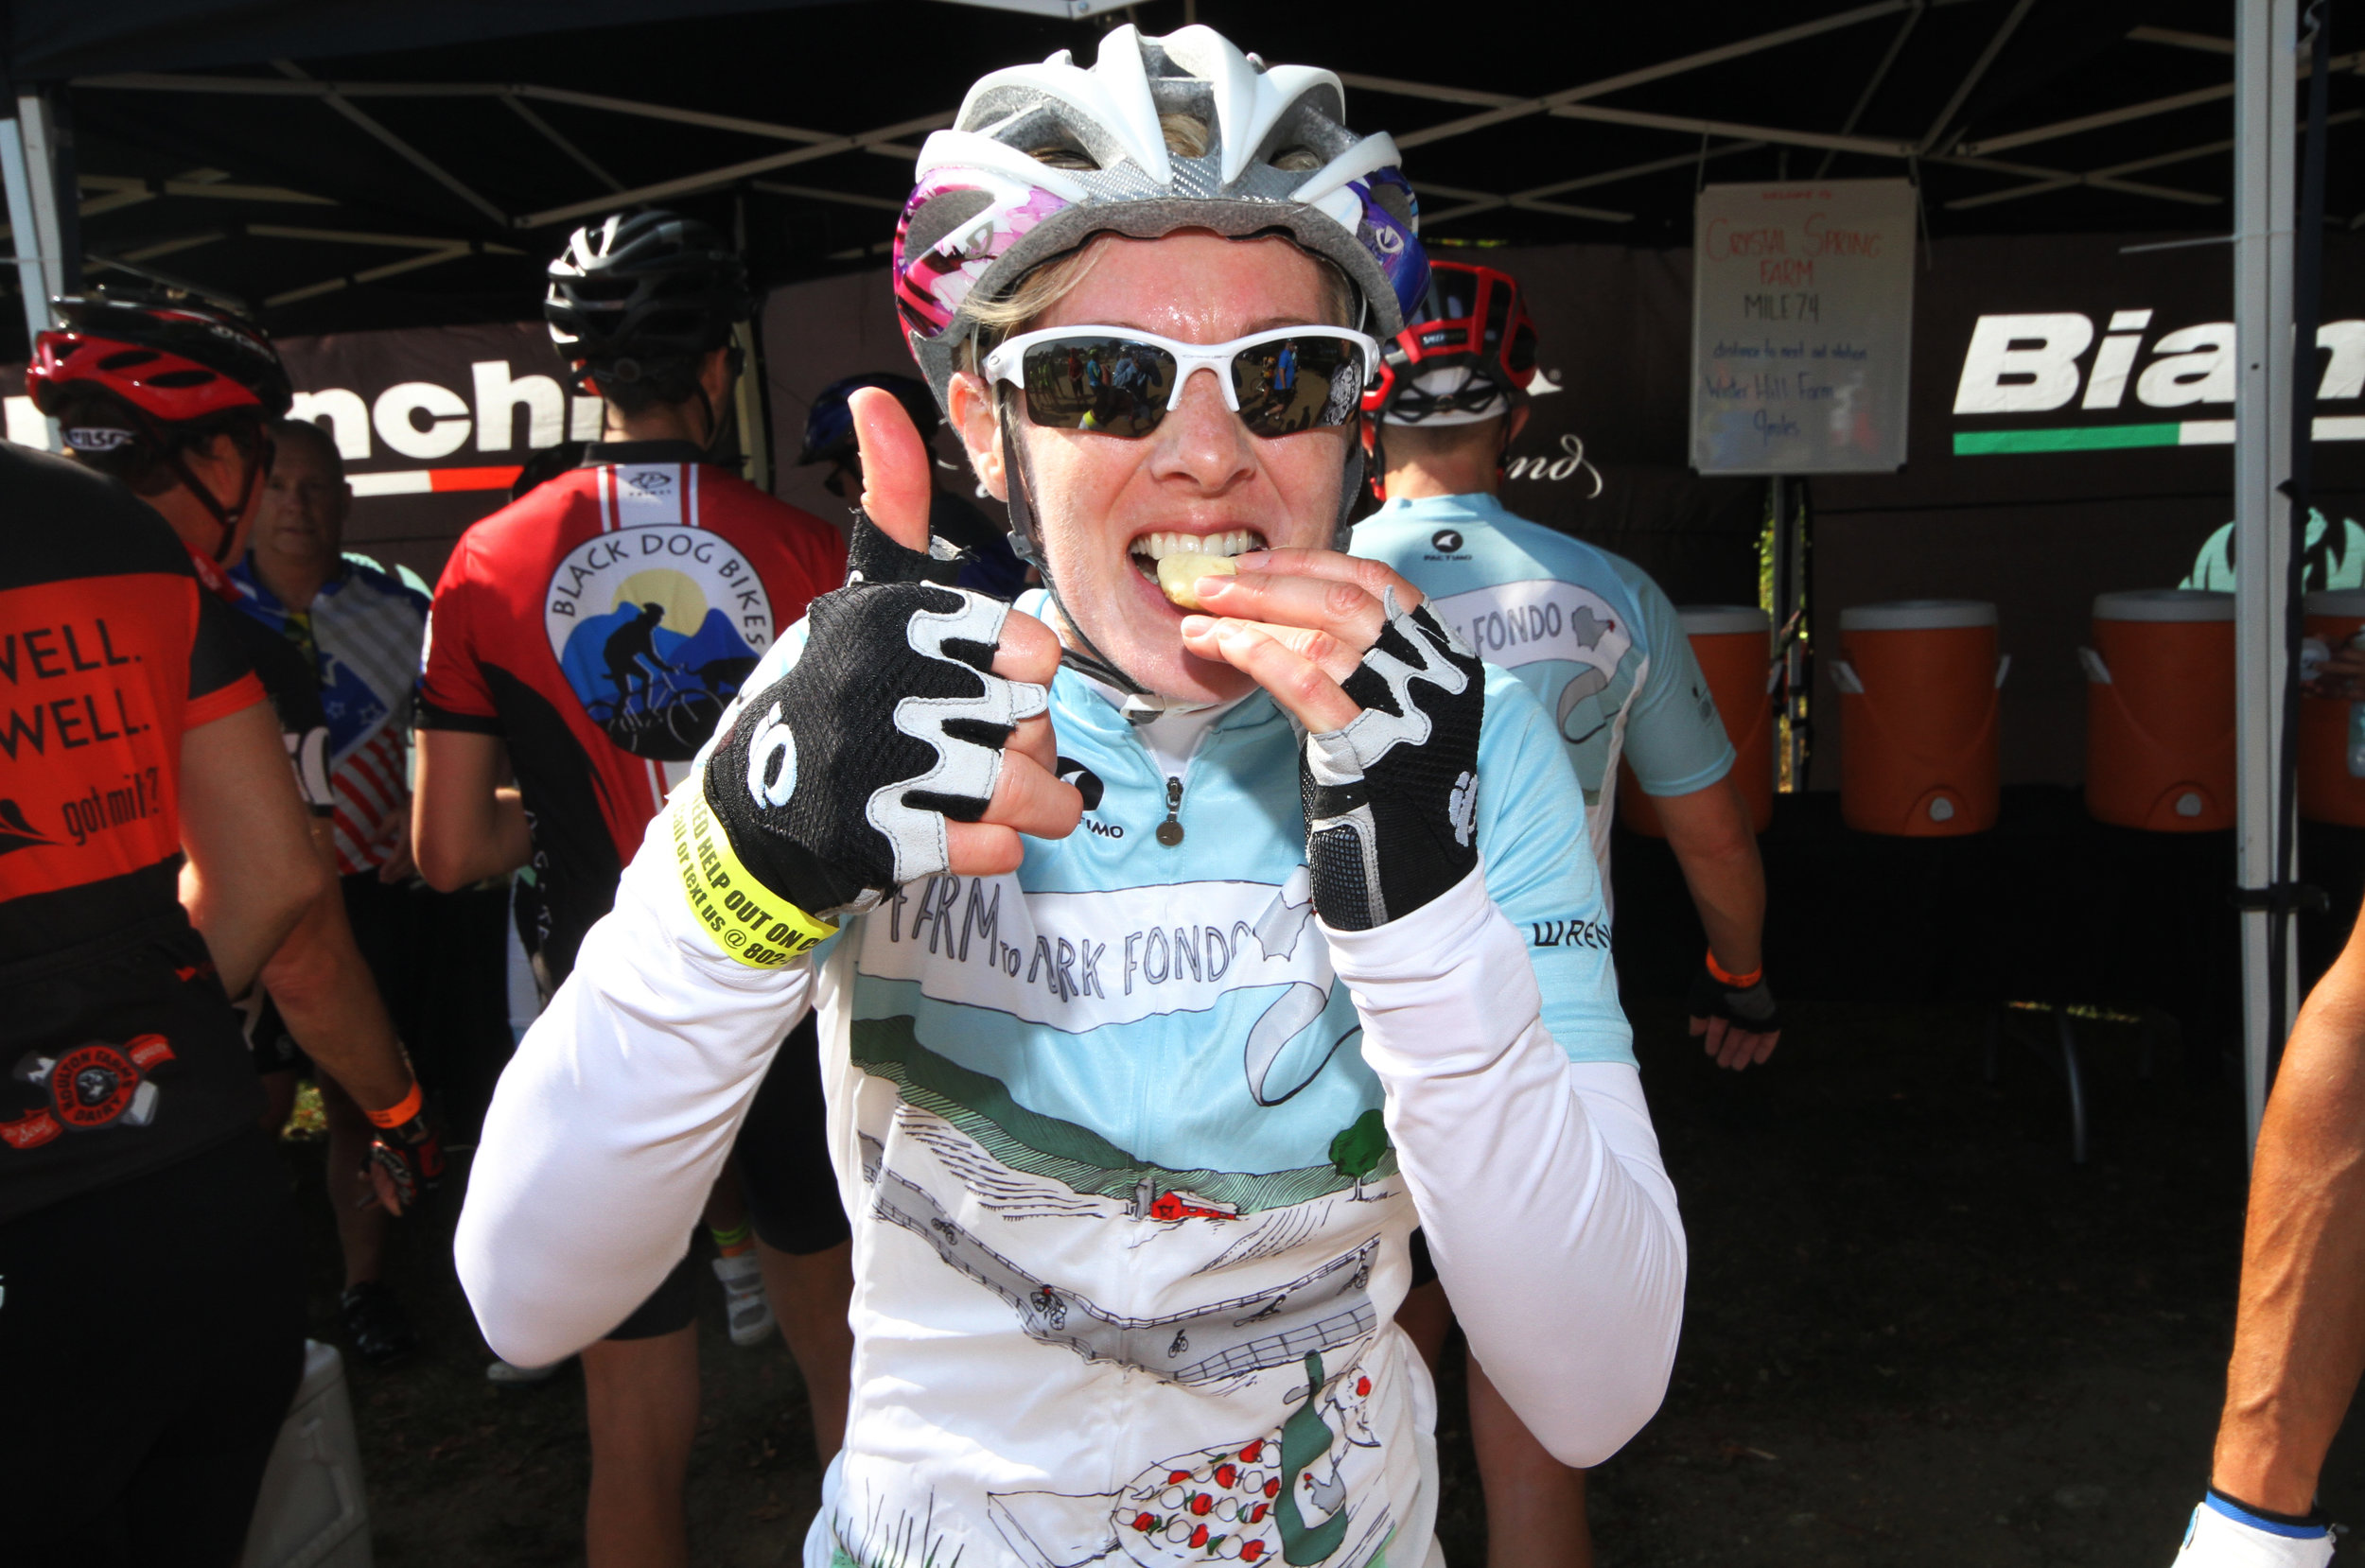 Serendipity Catering chef, 2017 Farm to Fork Fondo - Finger Lakes